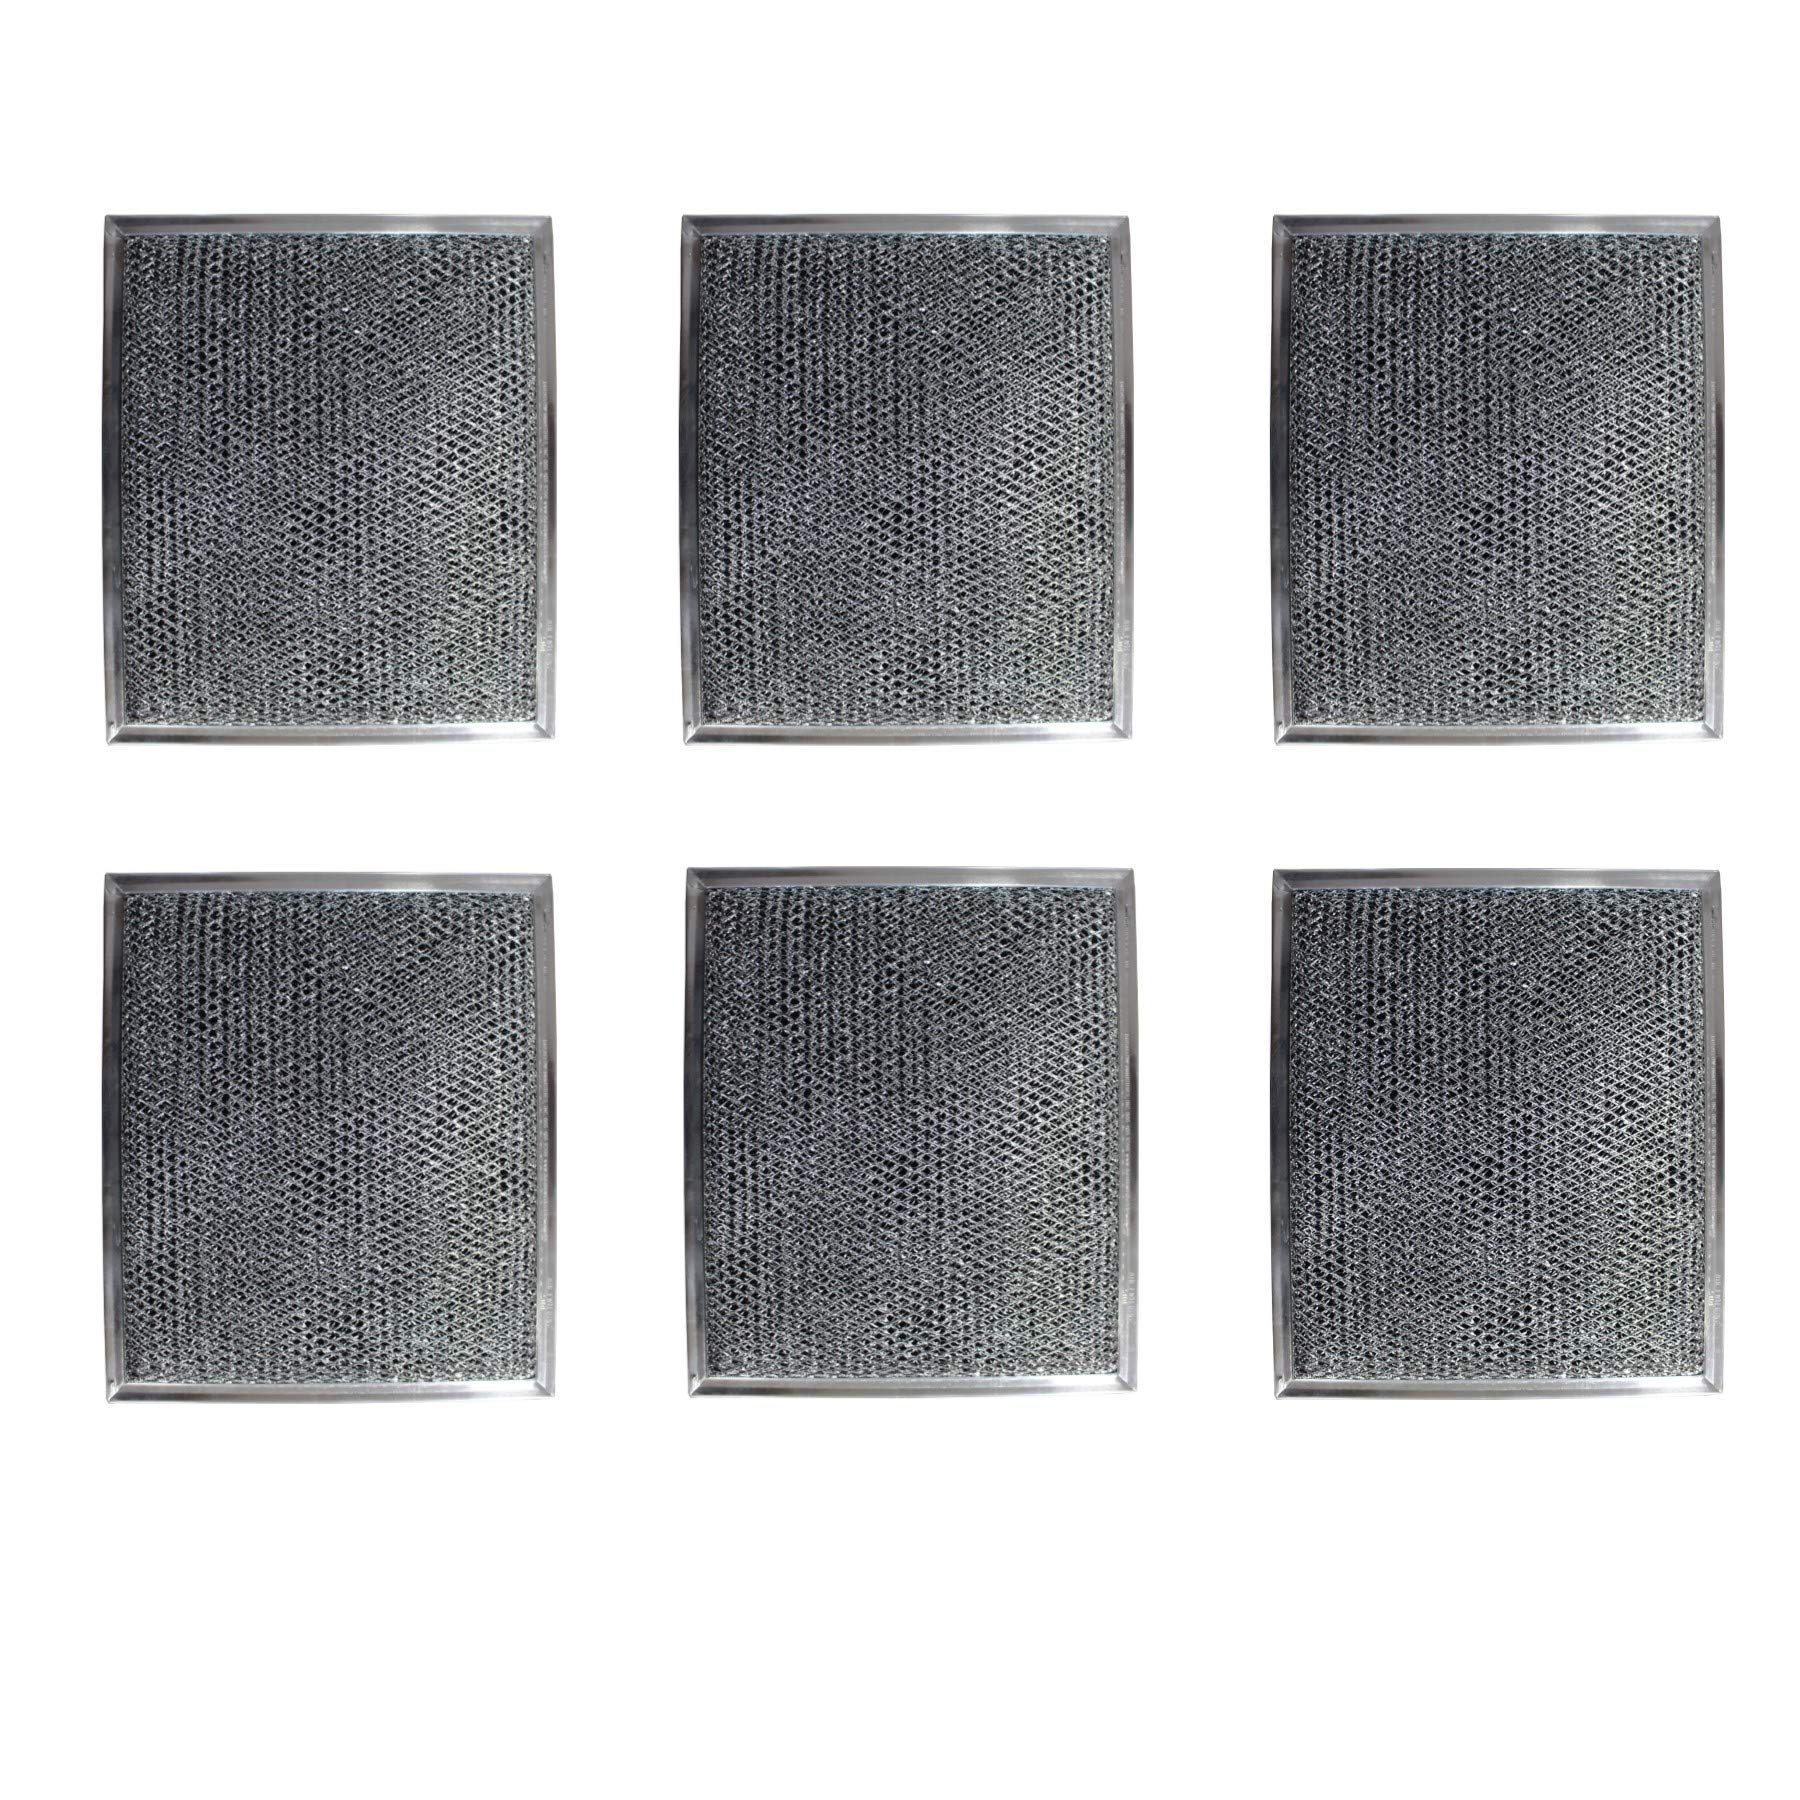 Replacement Carbon Filters compatible with GE: WB2X8406, WB02X10700 , 7506 (6 Pack)